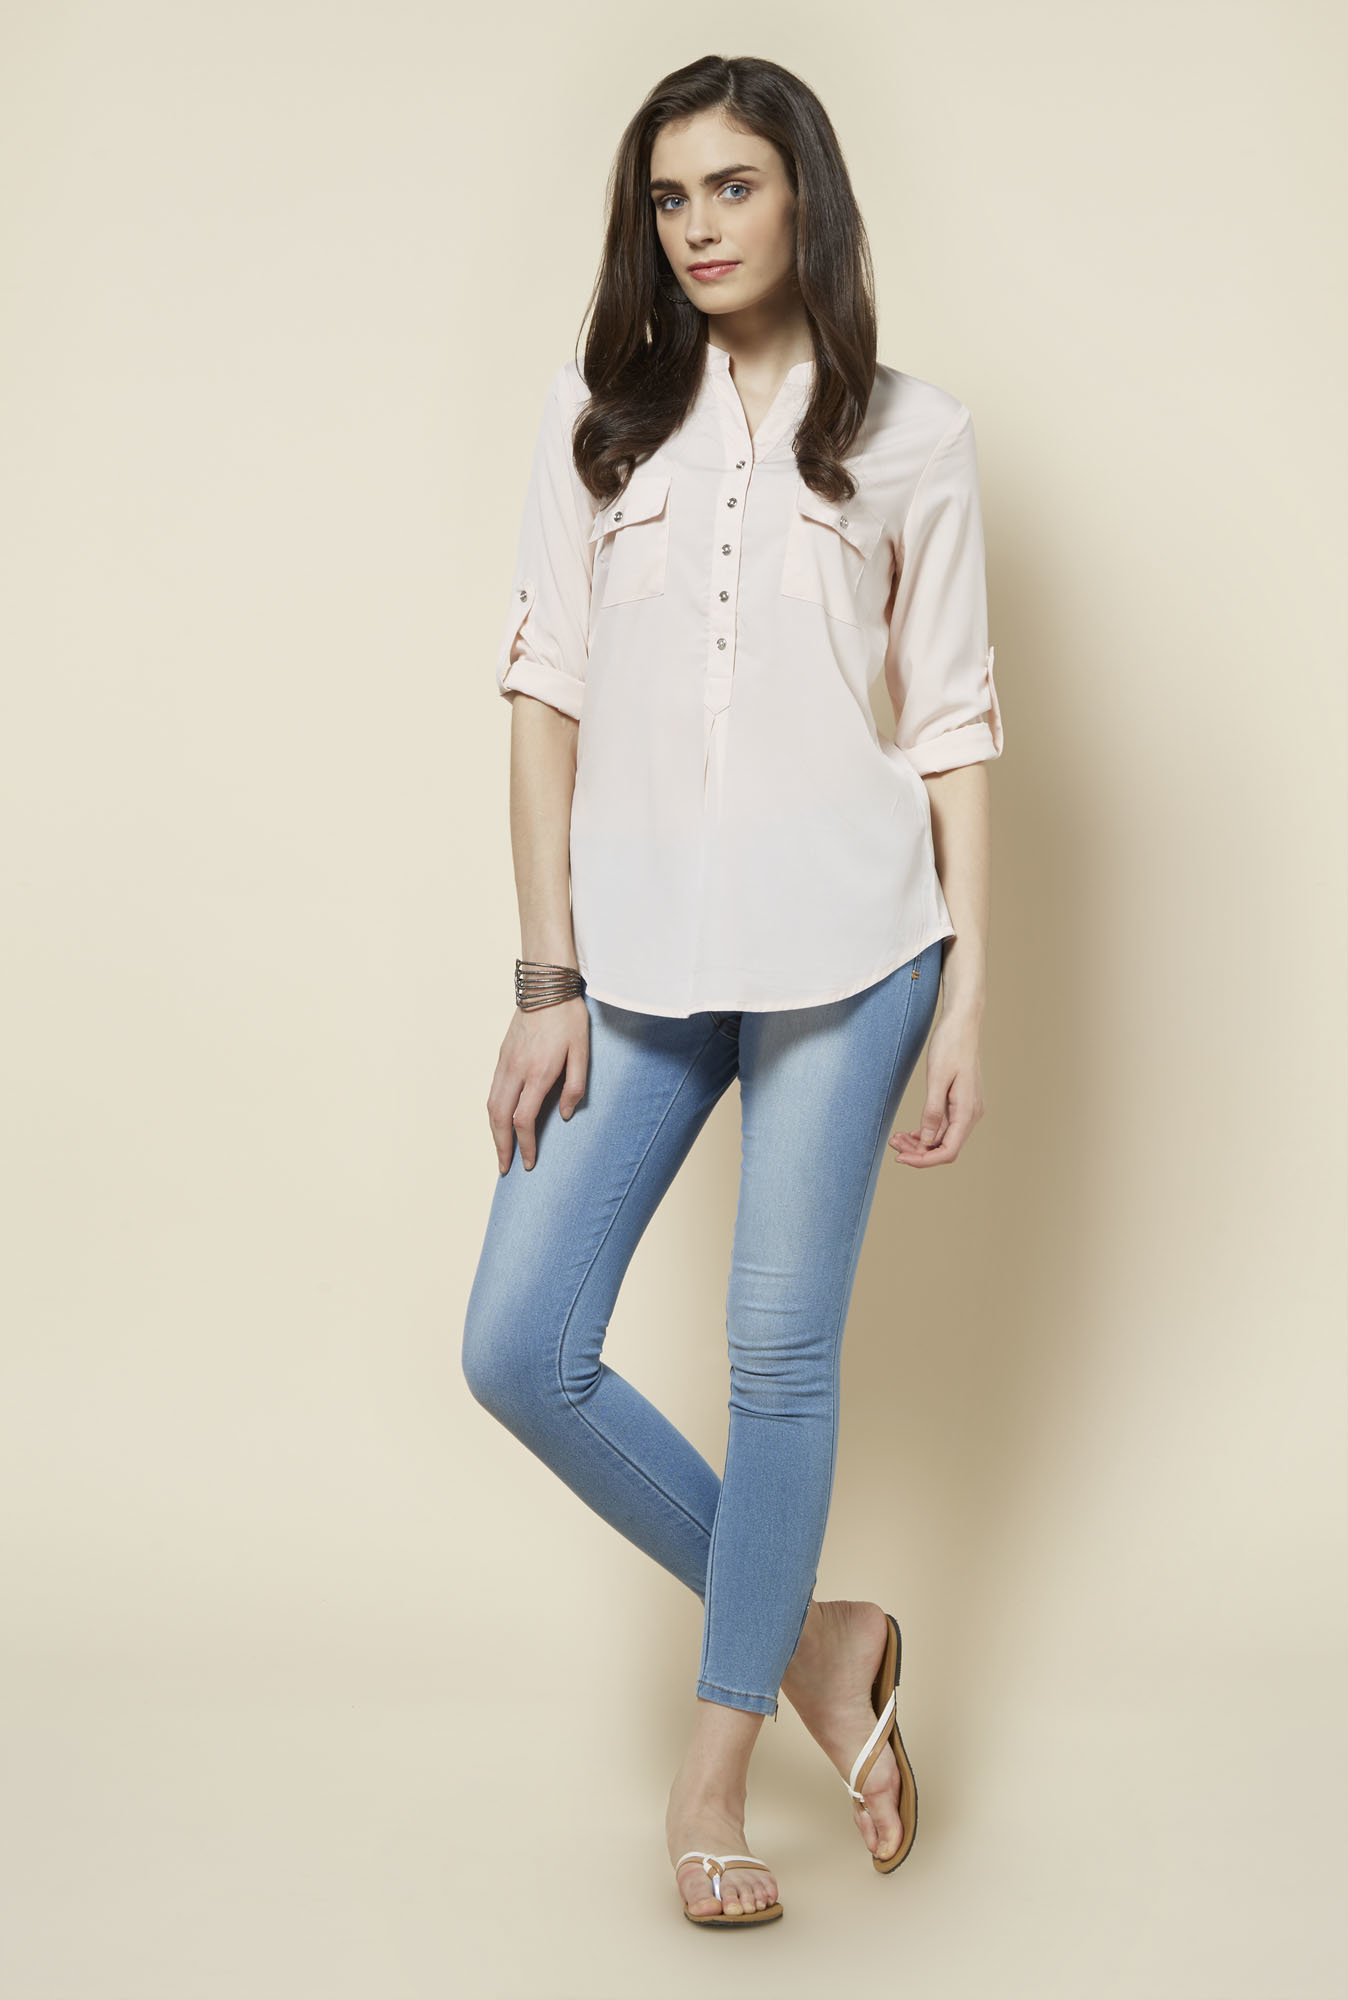 Zudio Light Pink Solid Topsy Blouse